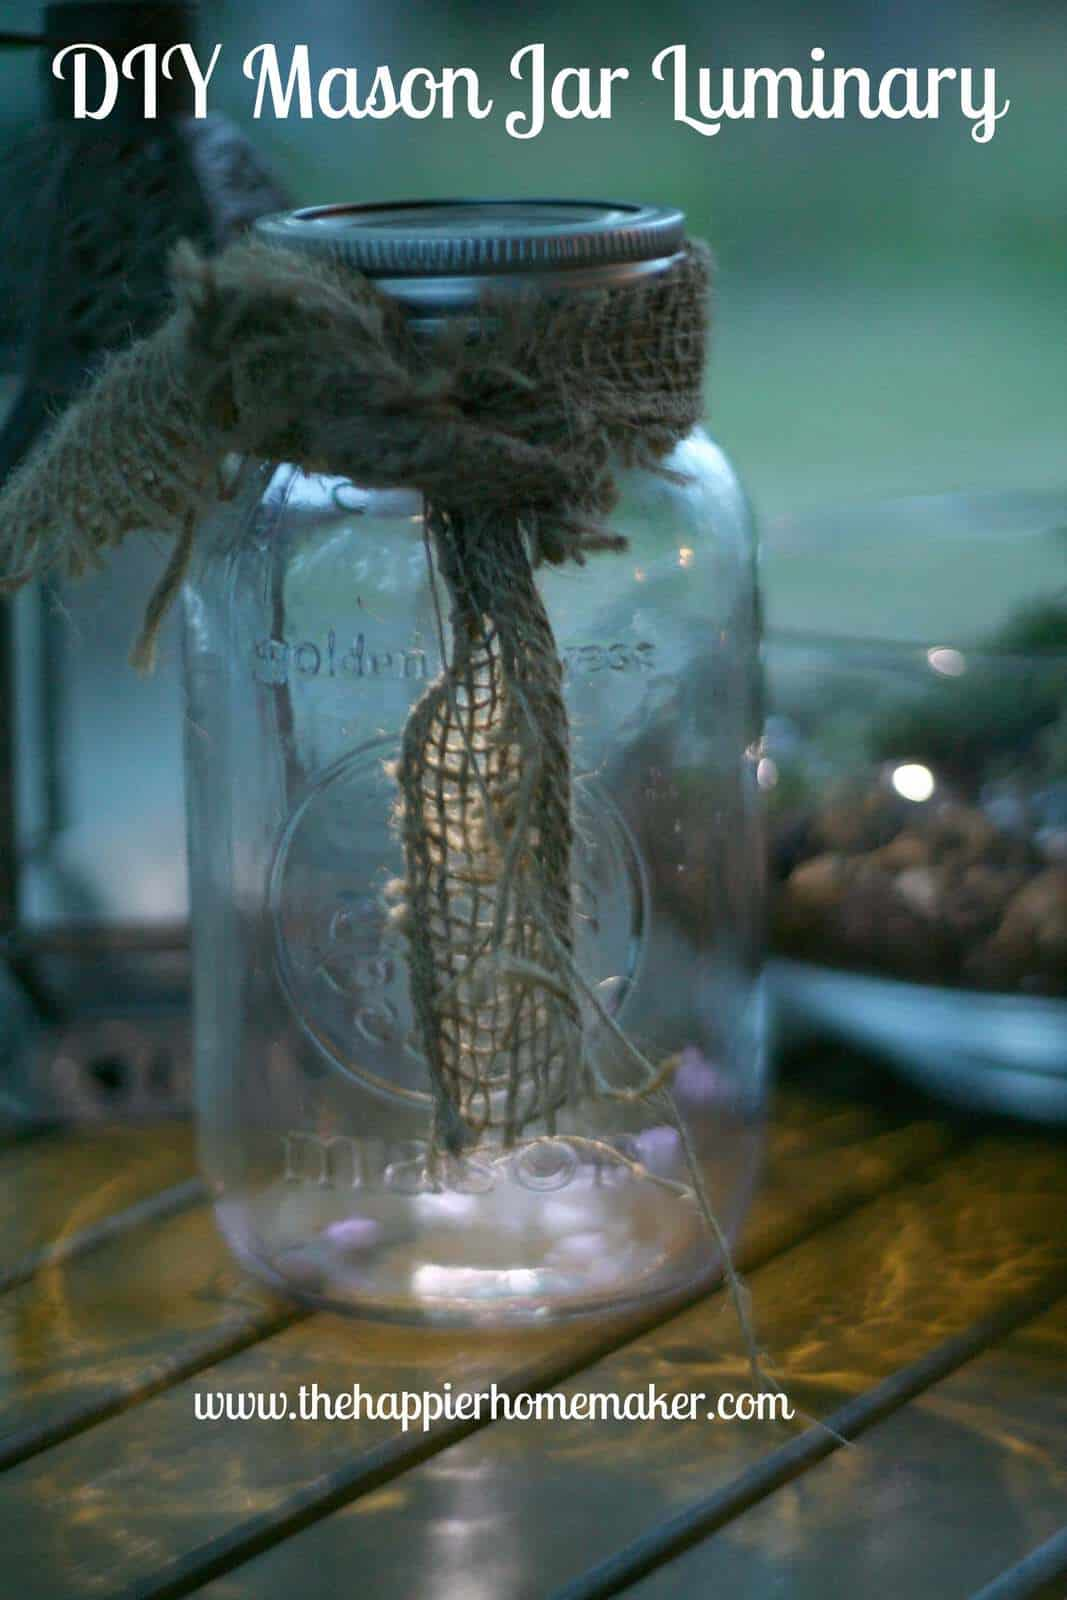 DIY Mason Jar Luminary